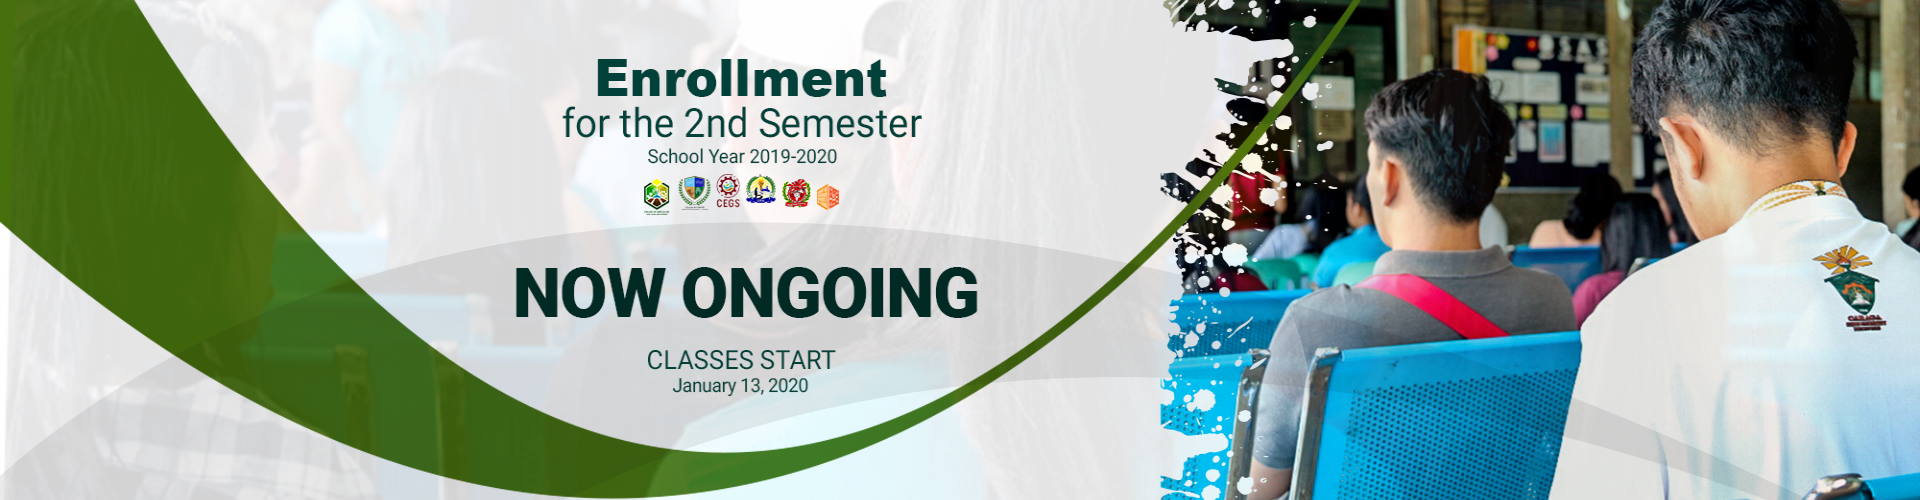 CSU Enrollment Announcement SY 2019-2020